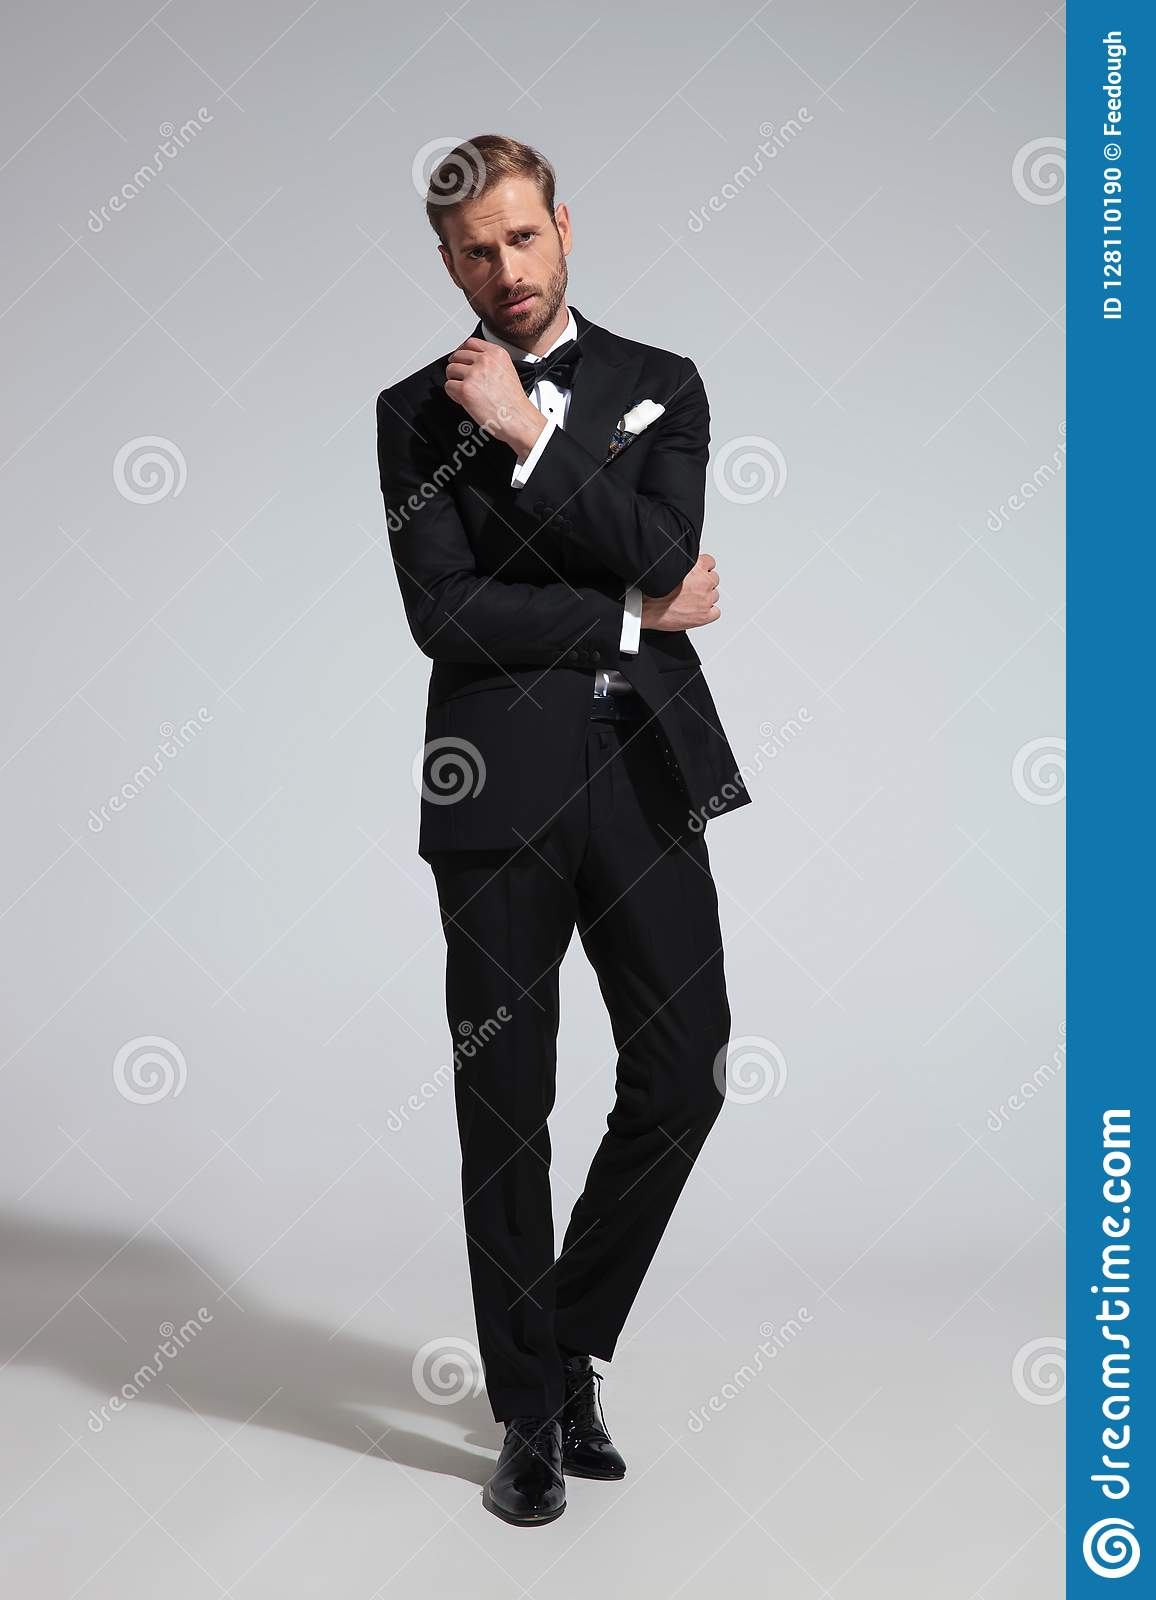 f3d0c8469f11 Young thoughtful elegant man in tuxedo and bowtie standing on gray  background